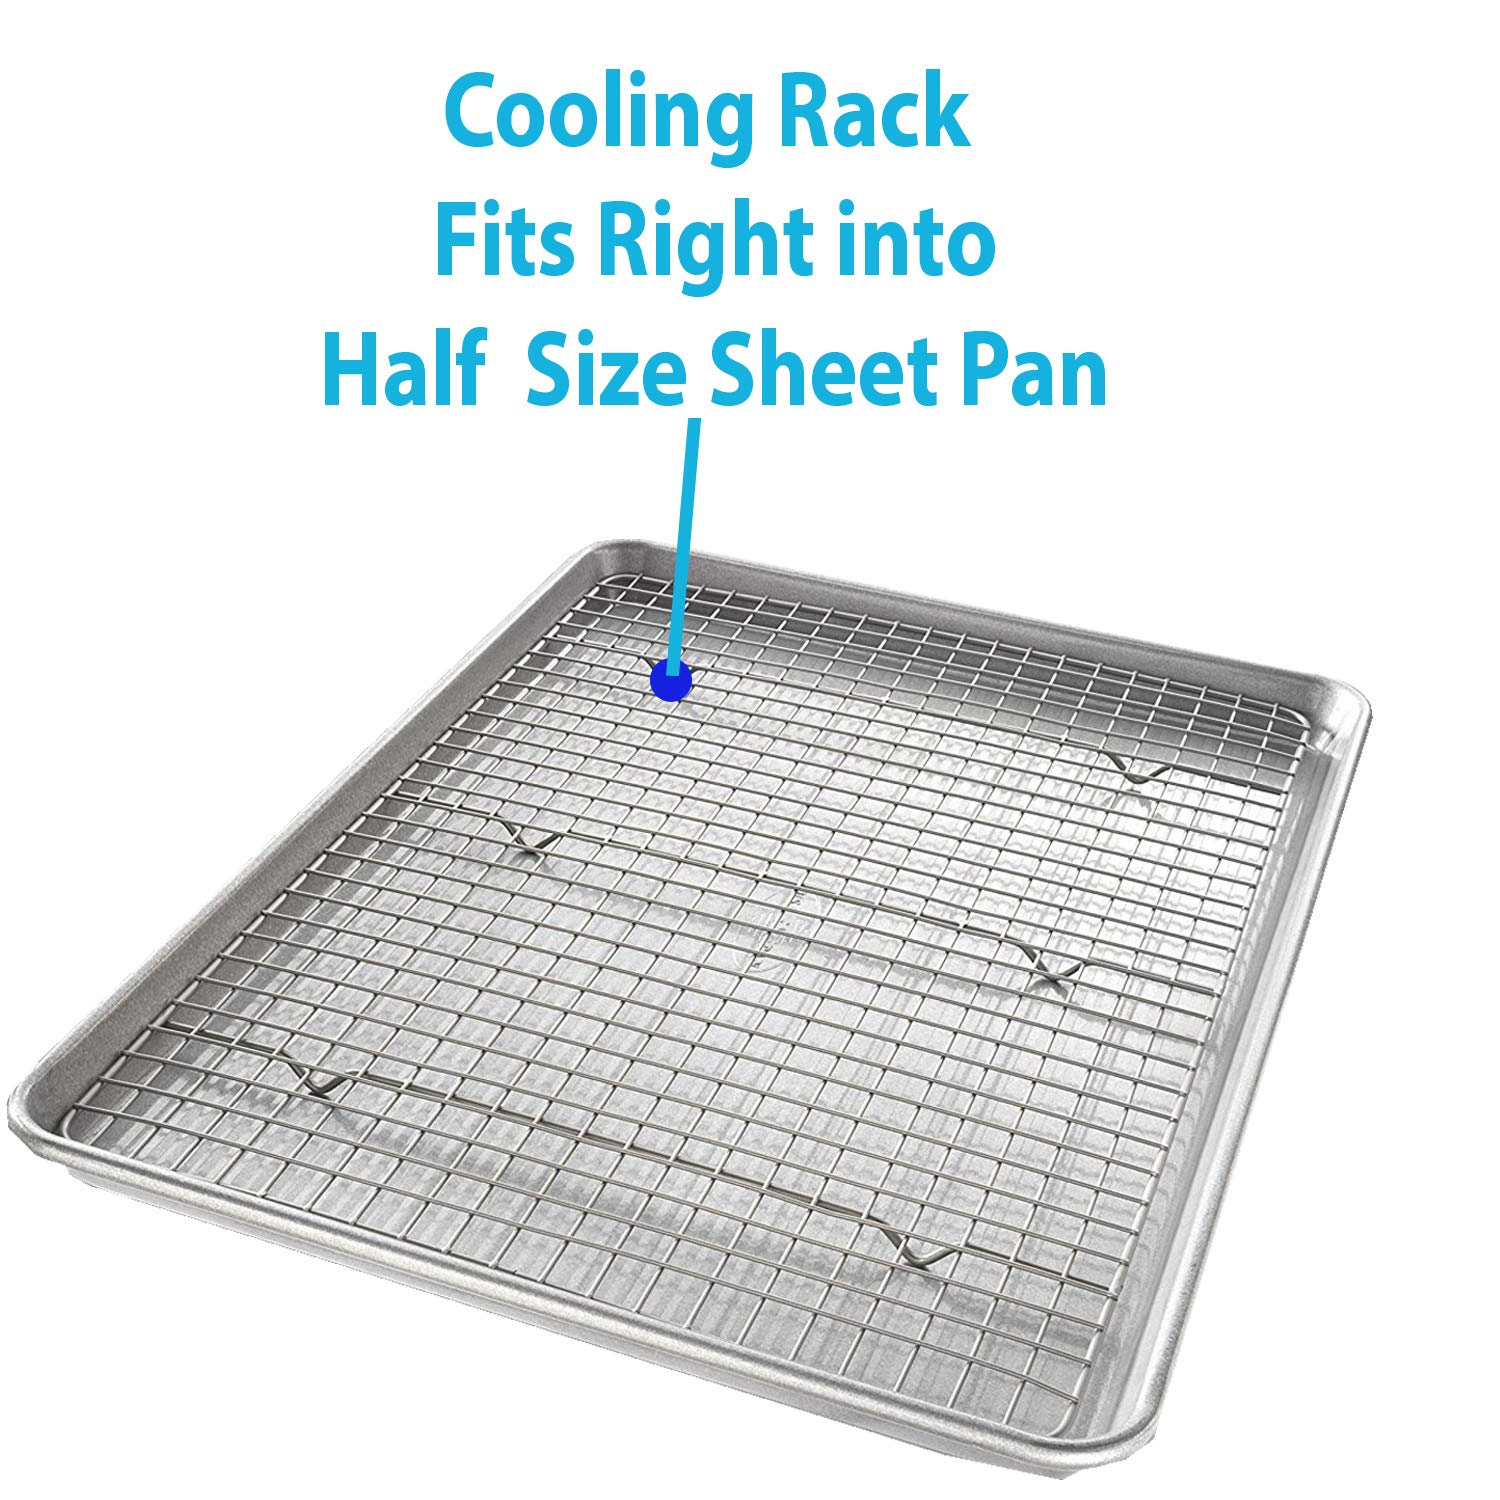 Bakeware Set - 2 Aluminum Sheet Pan, 2 Bakeable Cooling Rack (Stainless Steel) -All Half Size - for Commercial or Home Use. Non Toxic, Perfect Baking Supply set for gifts by HeroFiber (Image #4)